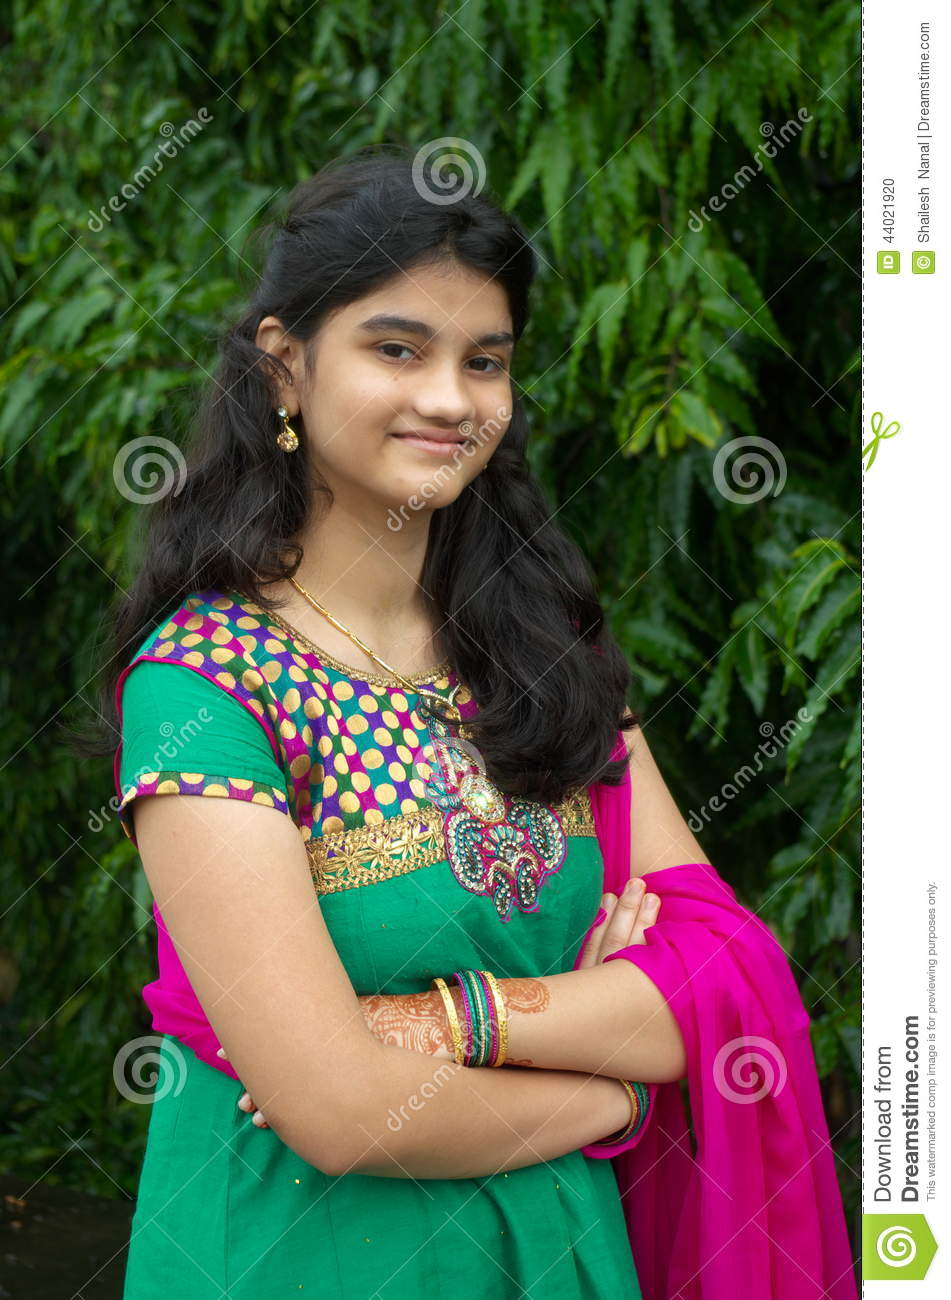 girls pictures indian